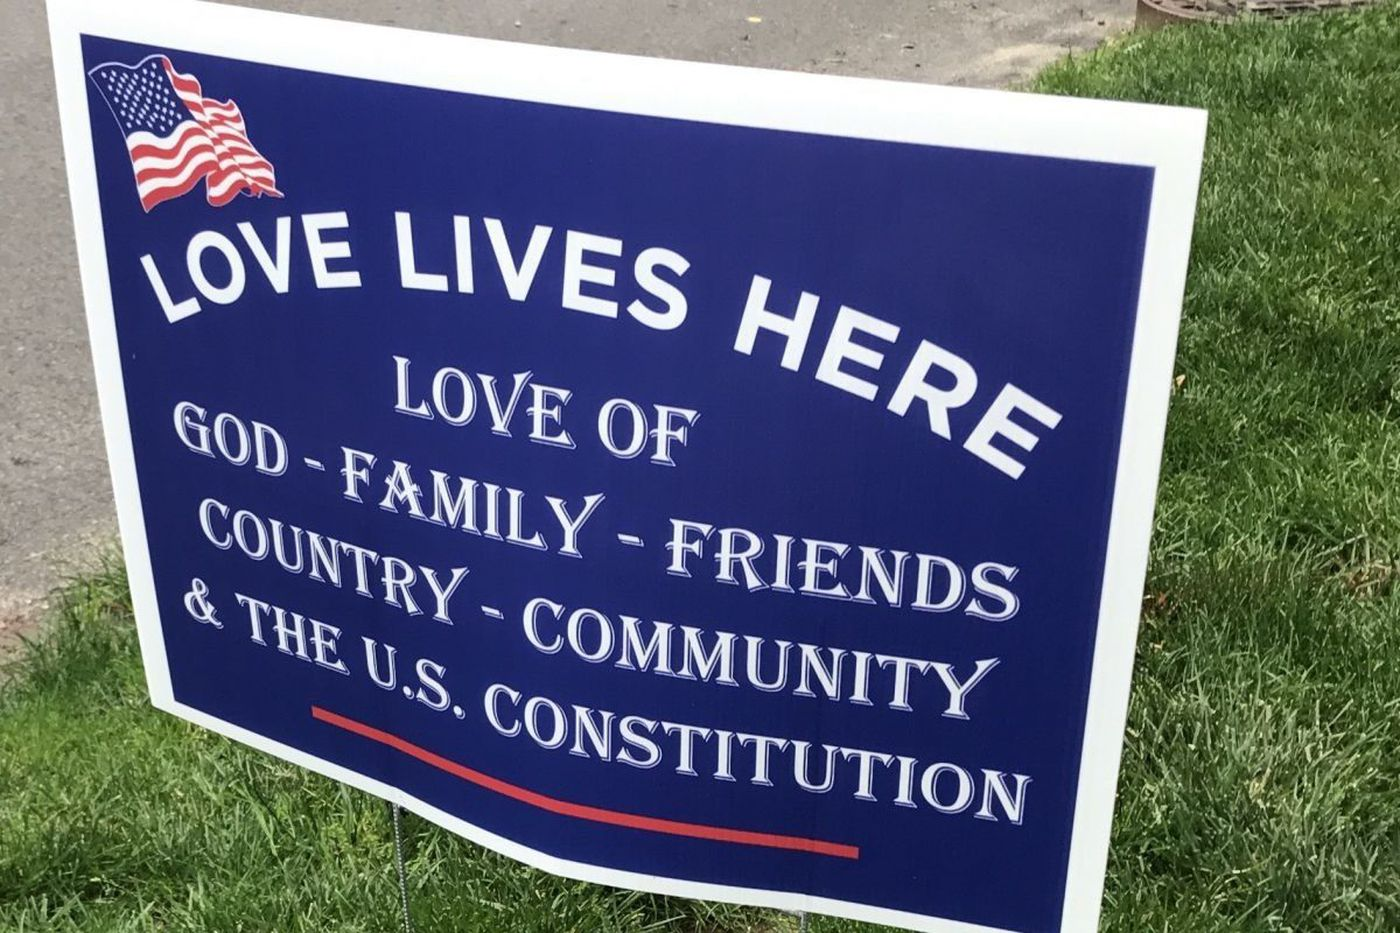 'Love Lives Here' signs spread positive message for Republicans